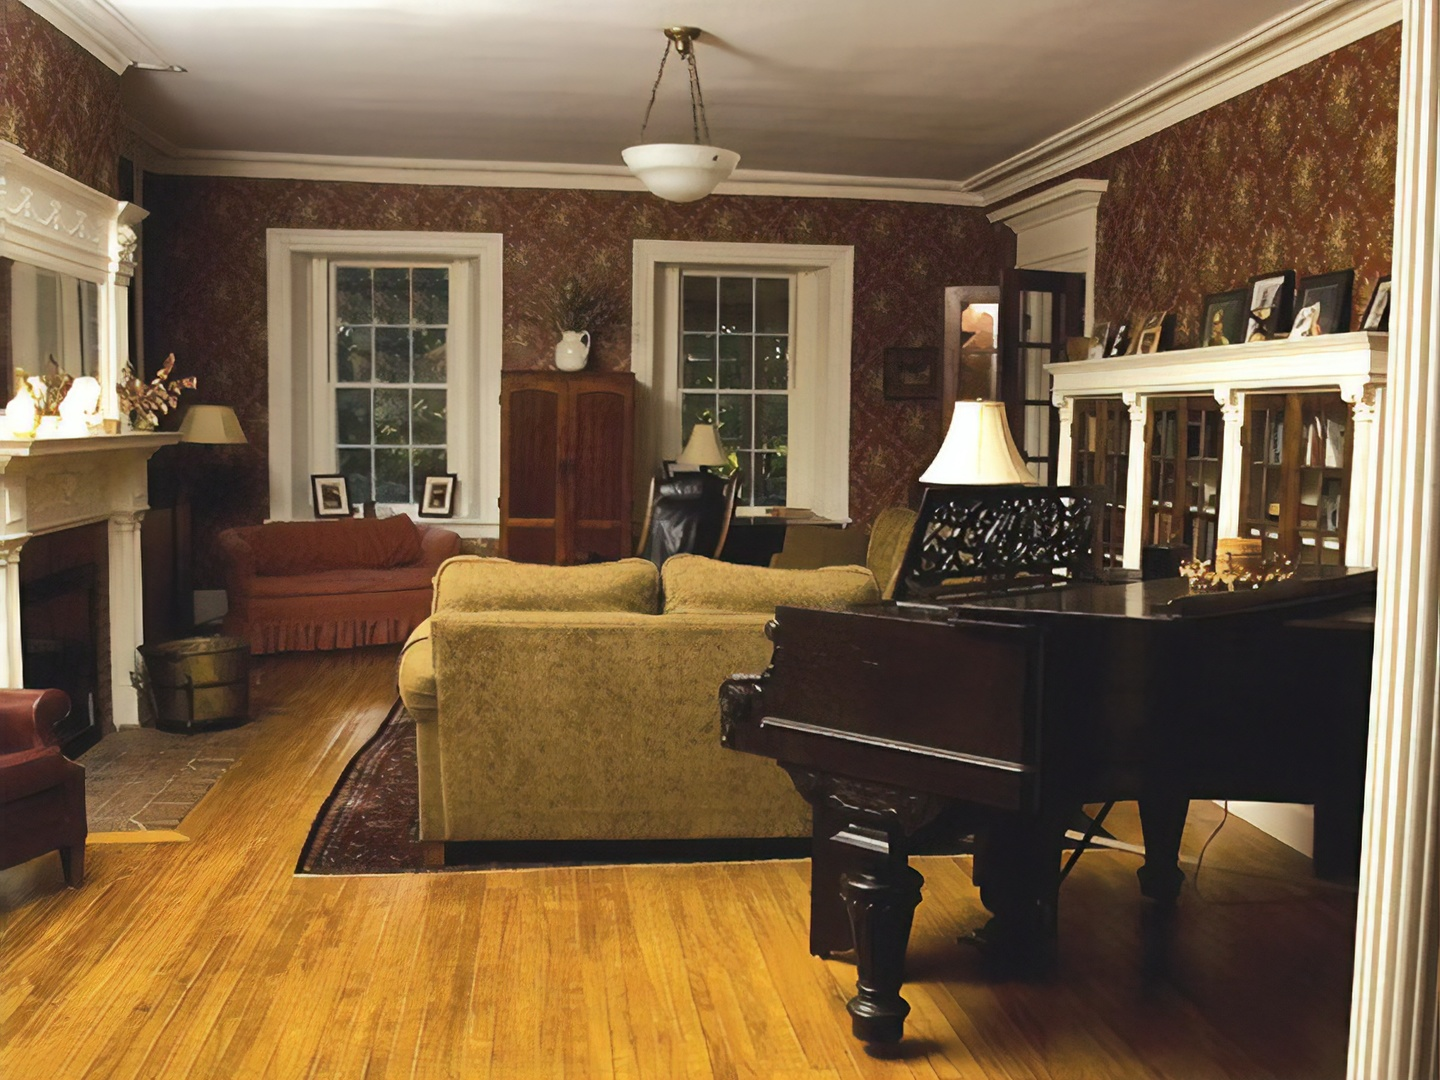 A living room filled with furniture and a large window at Catamount Bed & Breakfast.